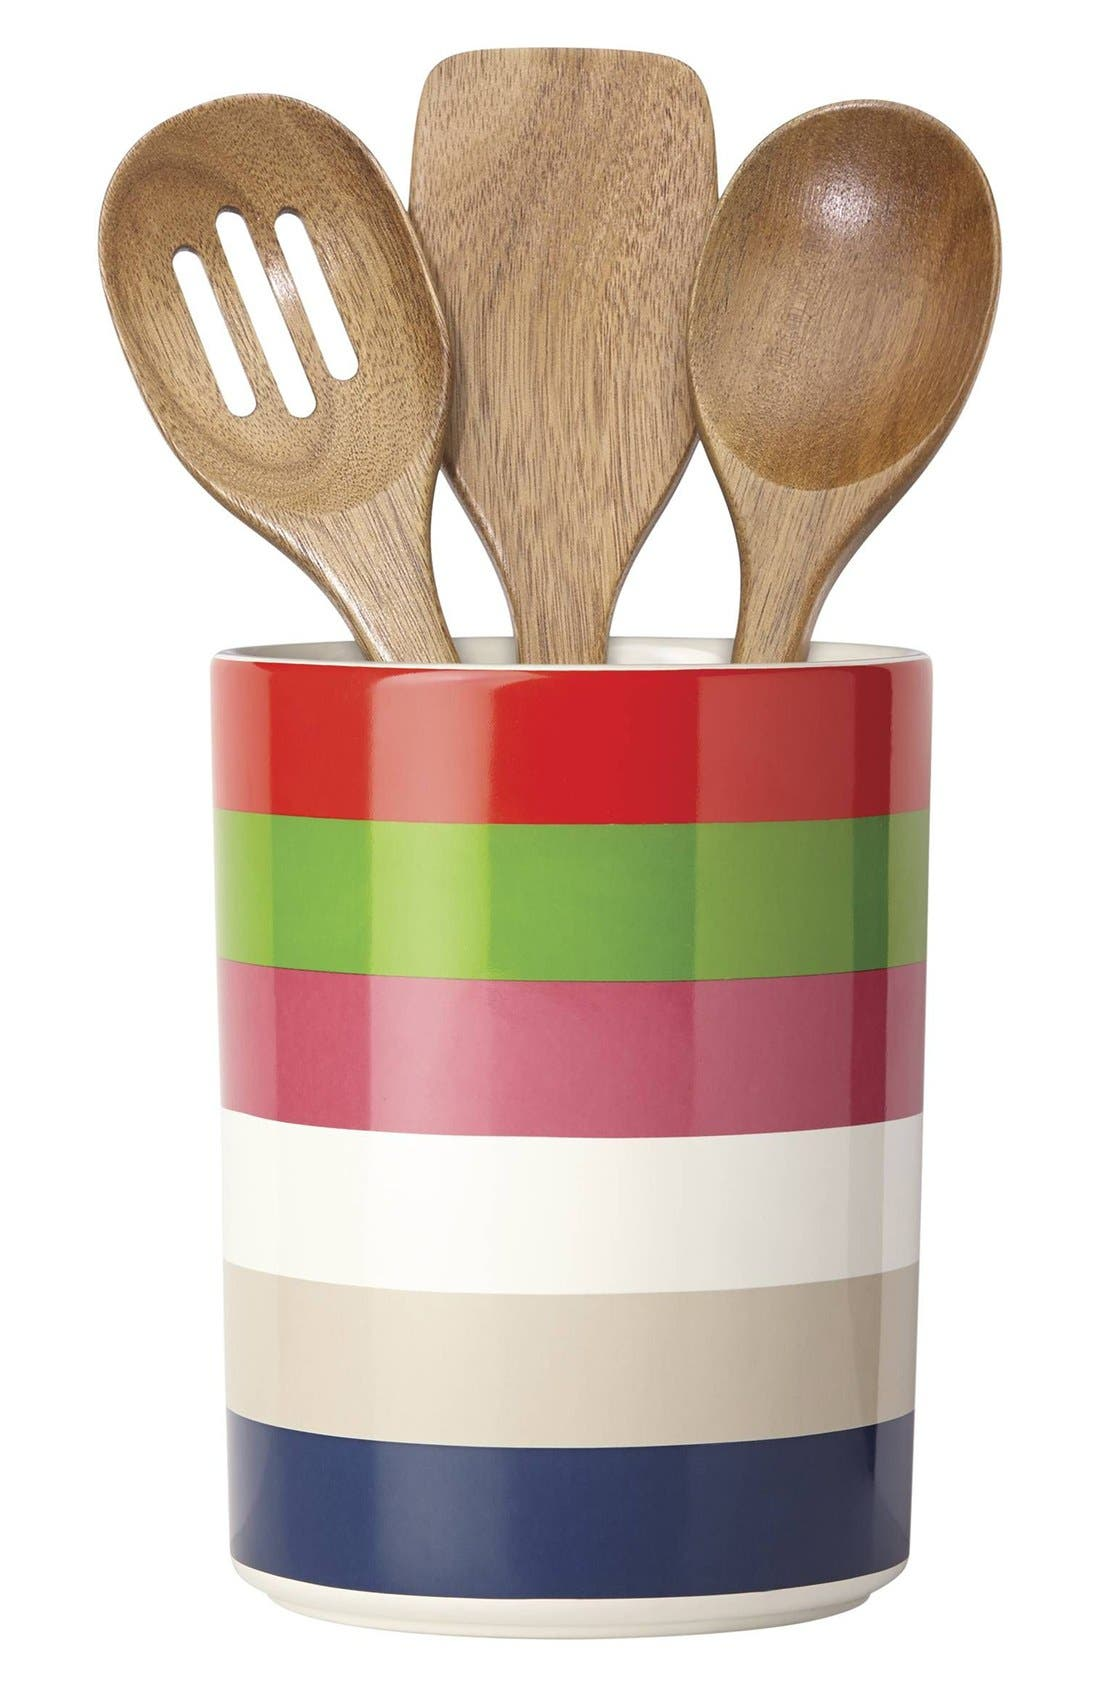 'all in good taste' 'deco' utensil crock & wooden spoons,                         Main,                         color, Multi Color Stripe